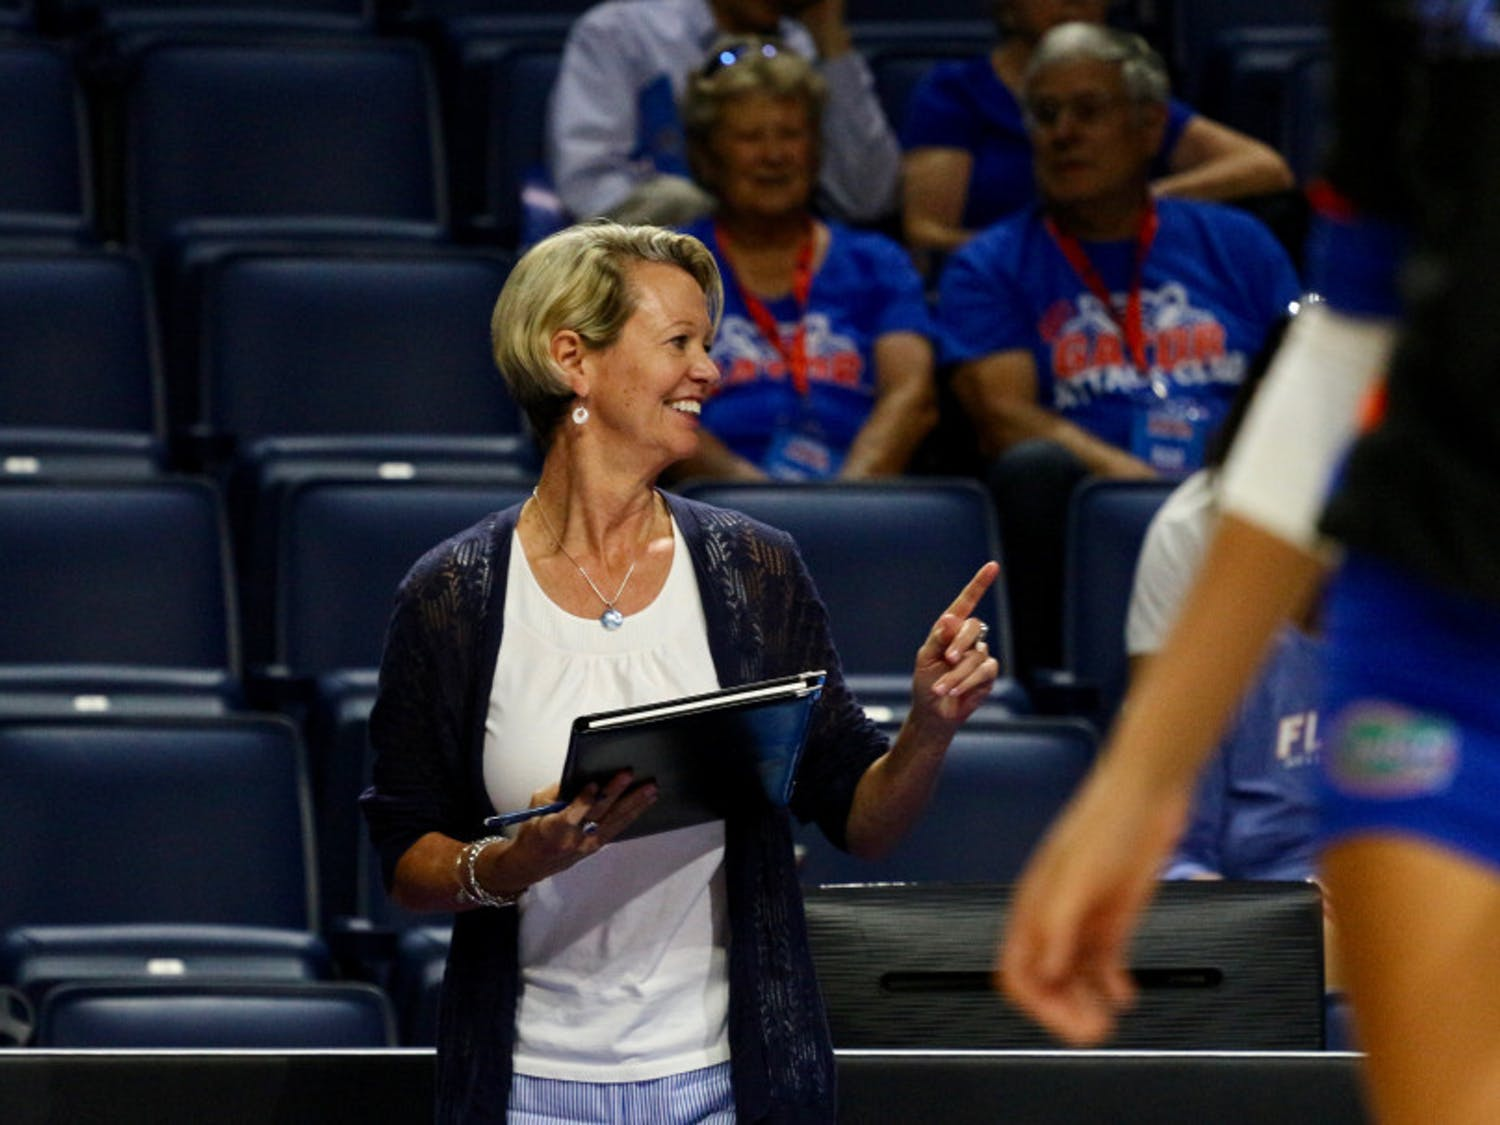 UF coach Mary Wise smiles during Florida's 3-0 win against Florida A&M on Sept. 15, 2017, in the O'Connell Center.